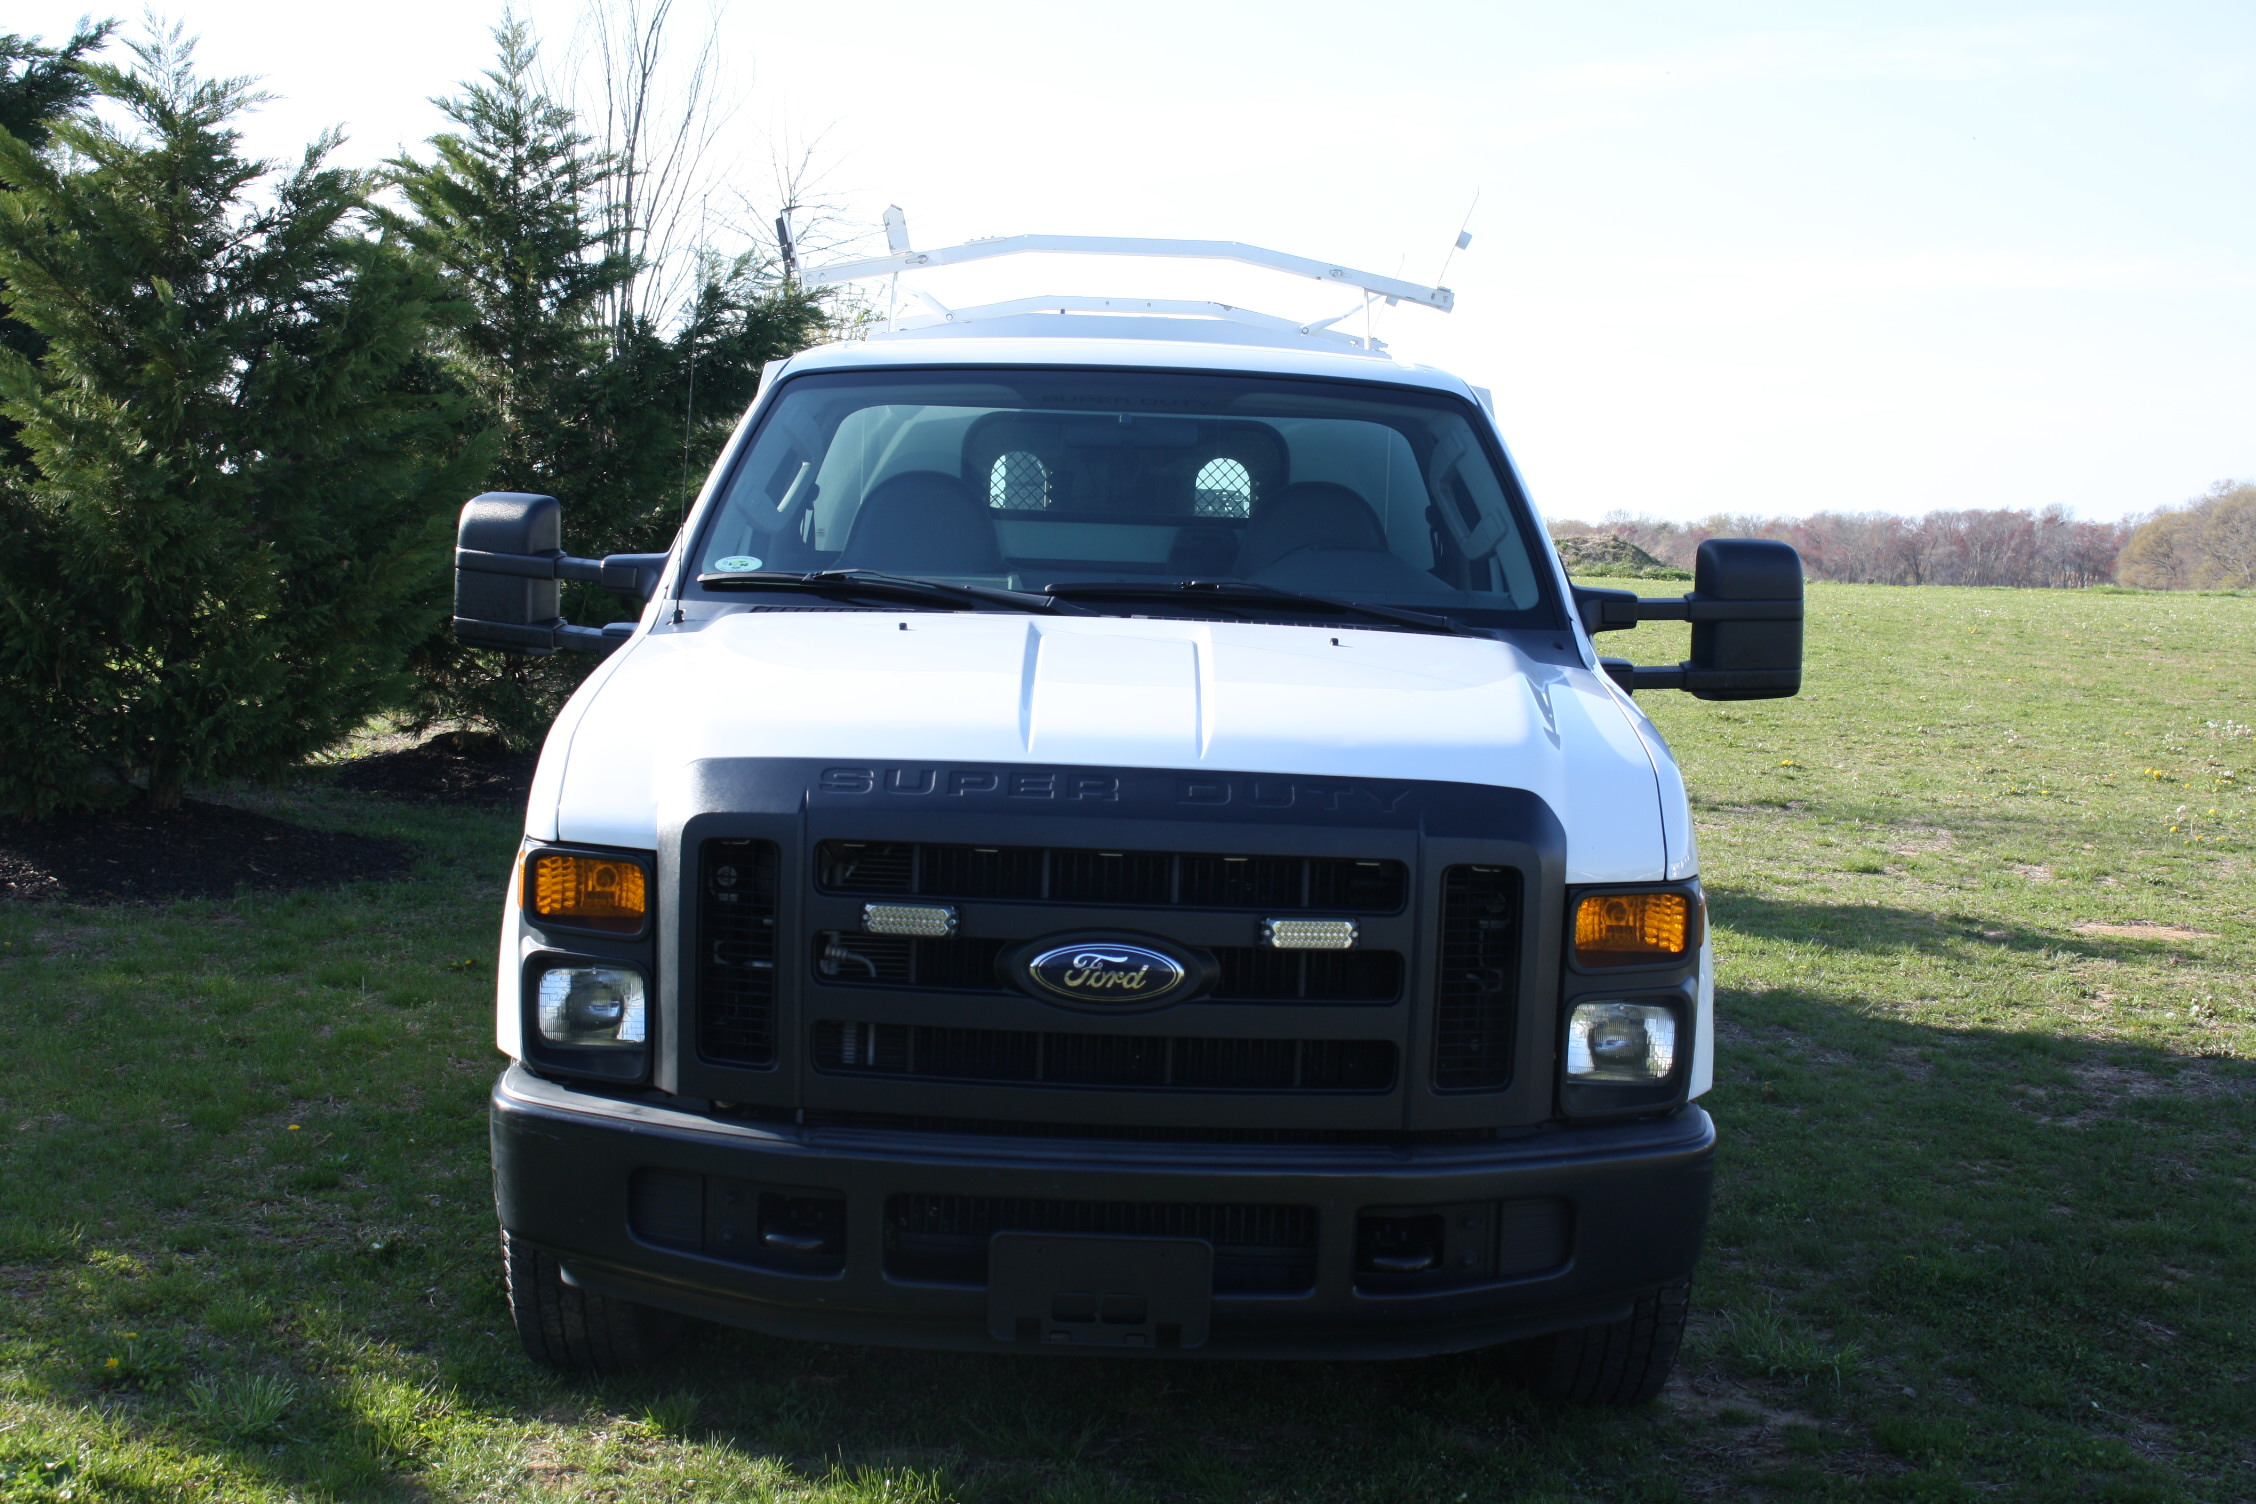 IMG 1203 - 2009 FORD F350 WITH KNAPHEIDE ENCLOSED UTILITY